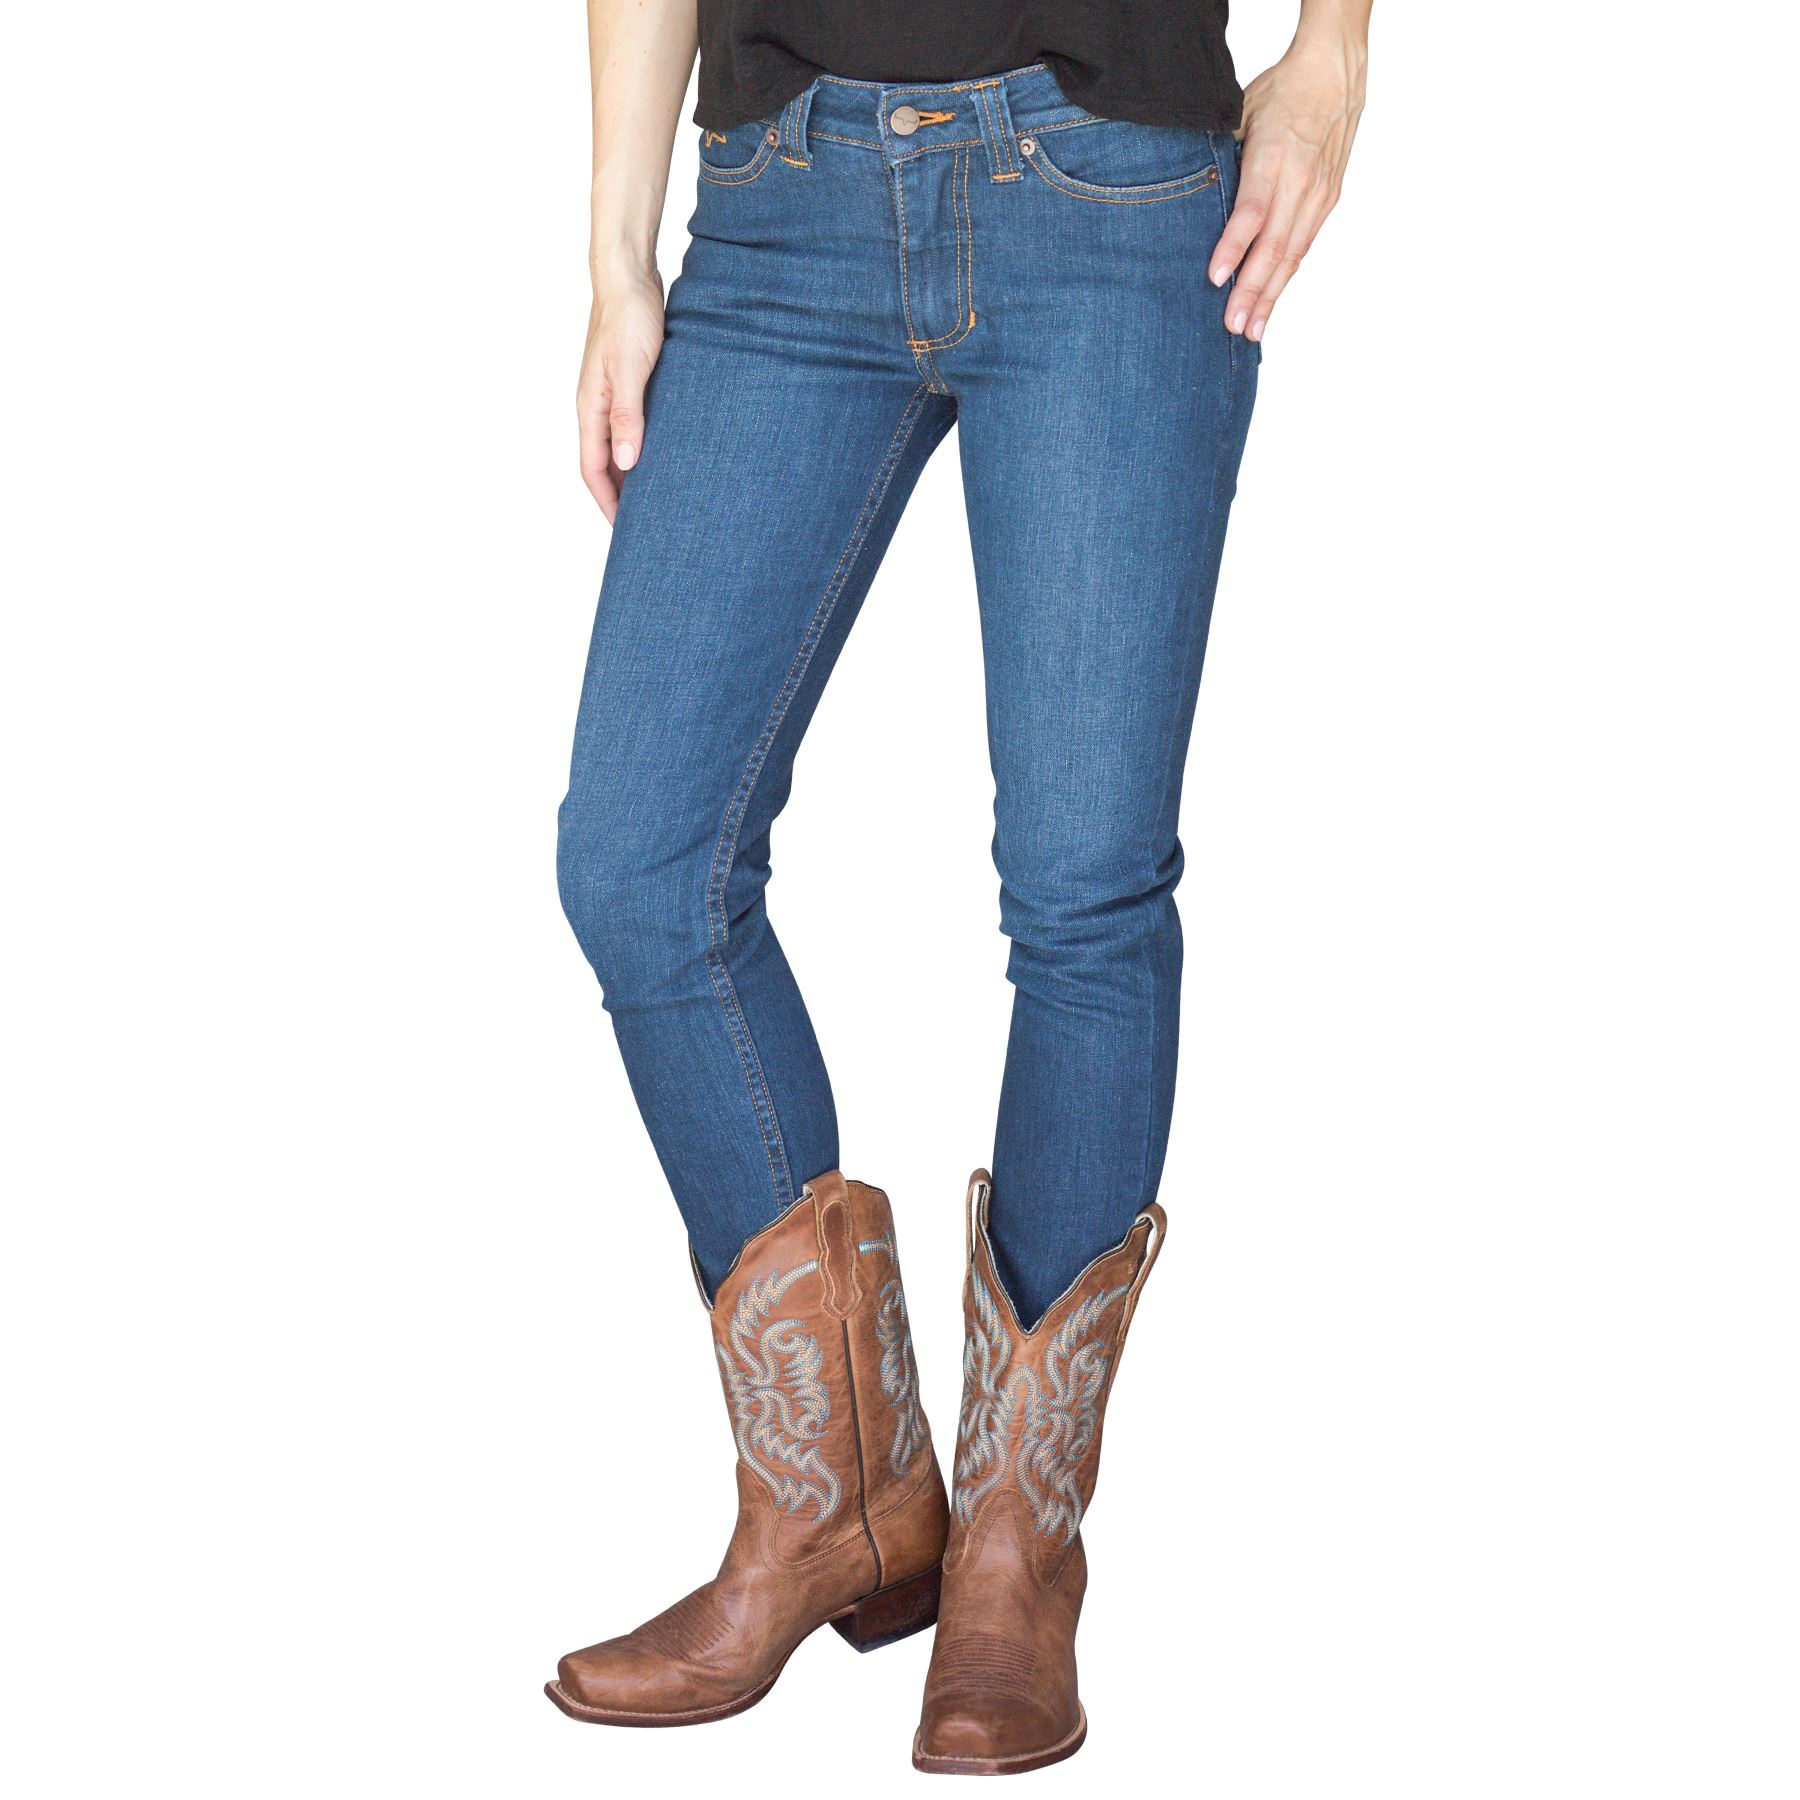 f434b68cc3f Kimes Ranch Women s Bonnie Skinny Jeans in Apparel Boots at ...